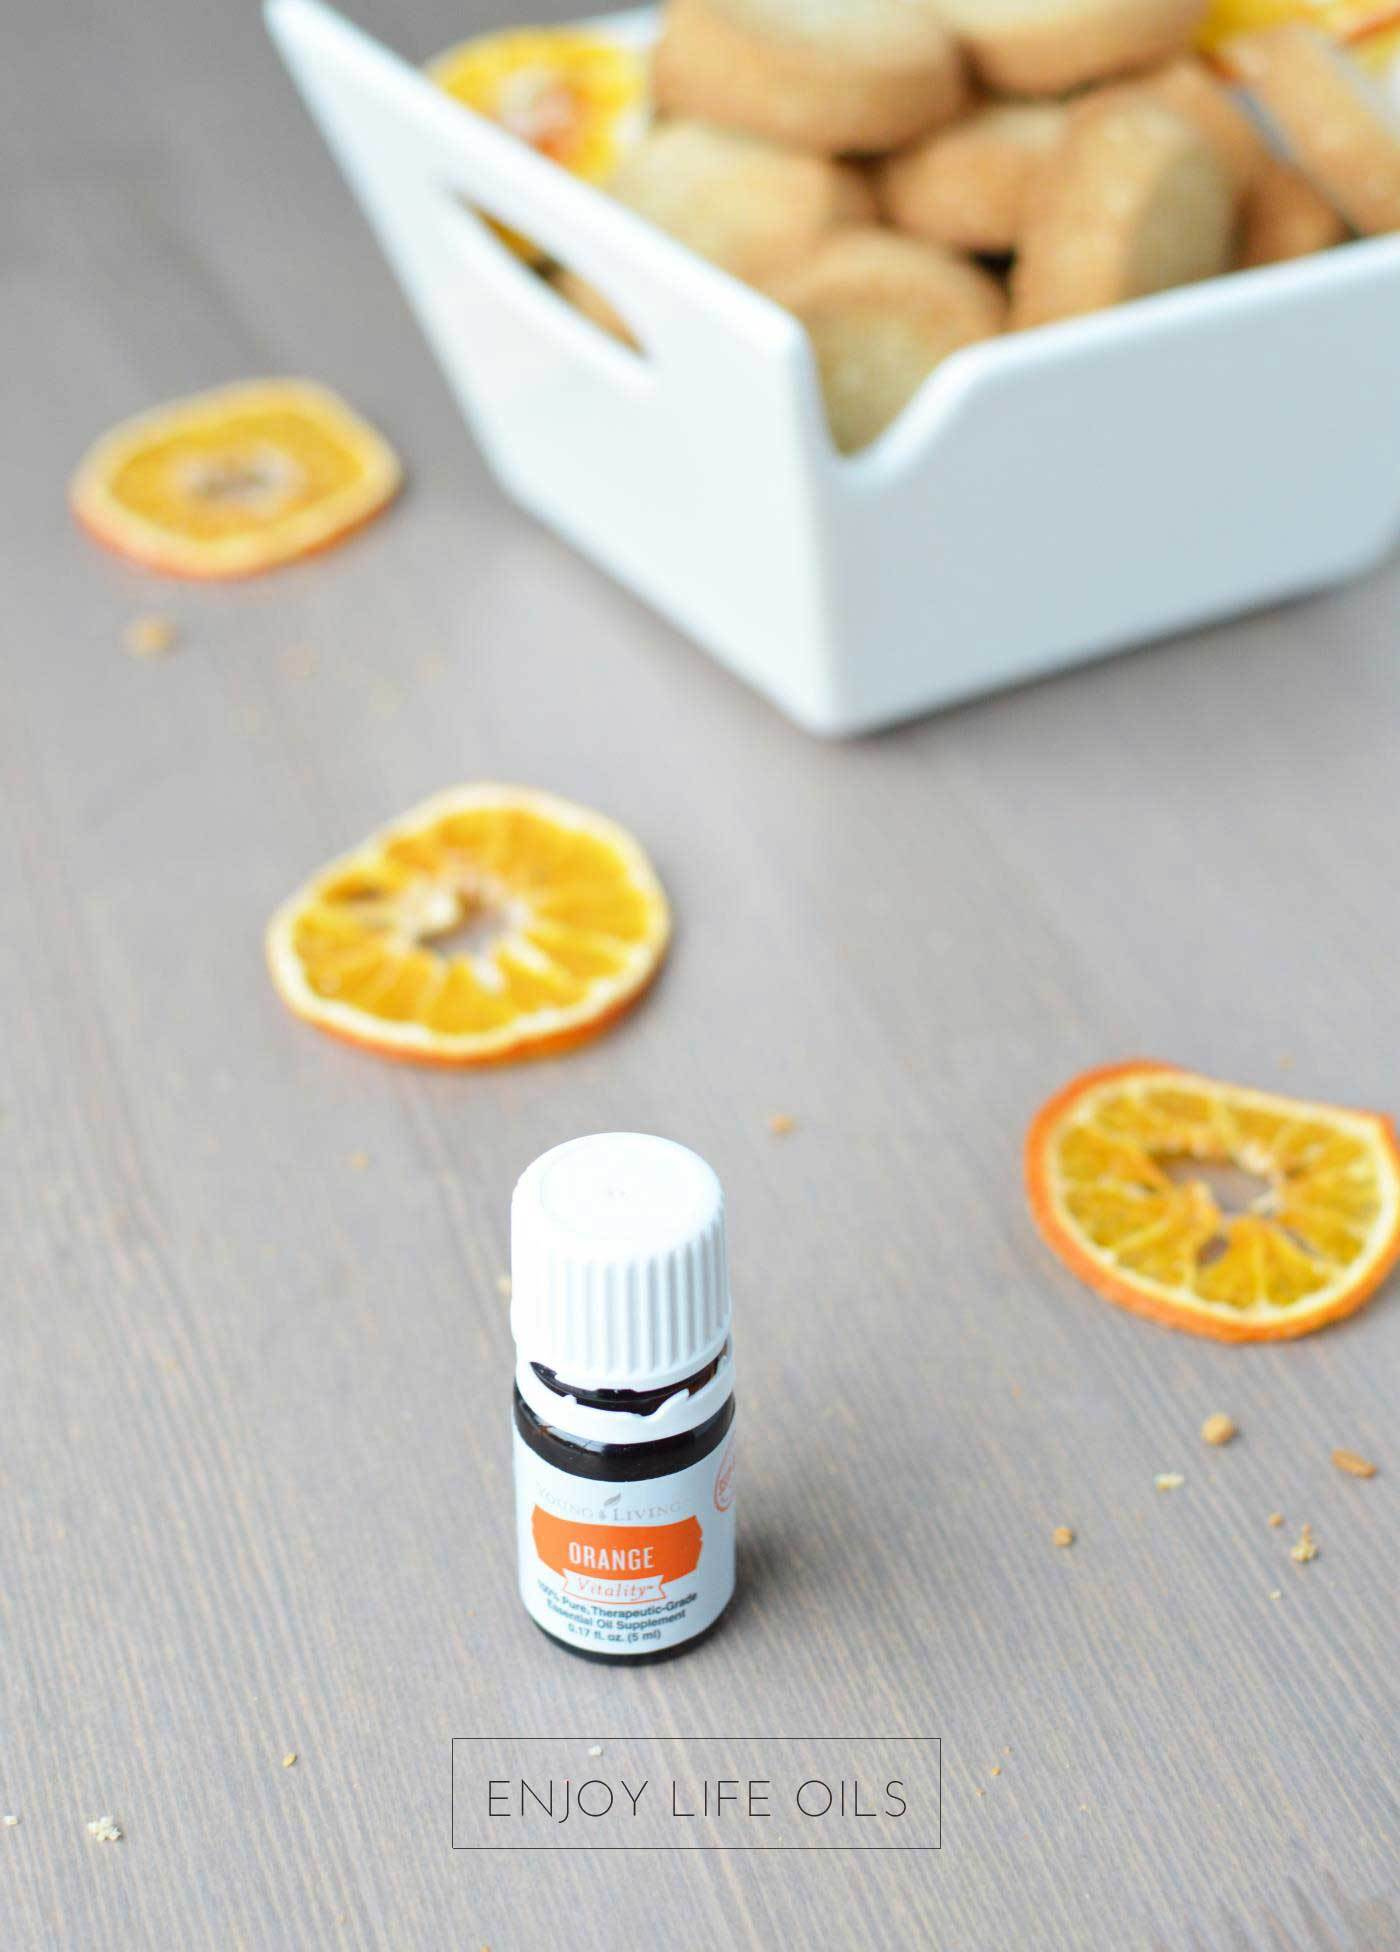 cooking with essential oils. Make shortbread with Orange Vitality from Young Living